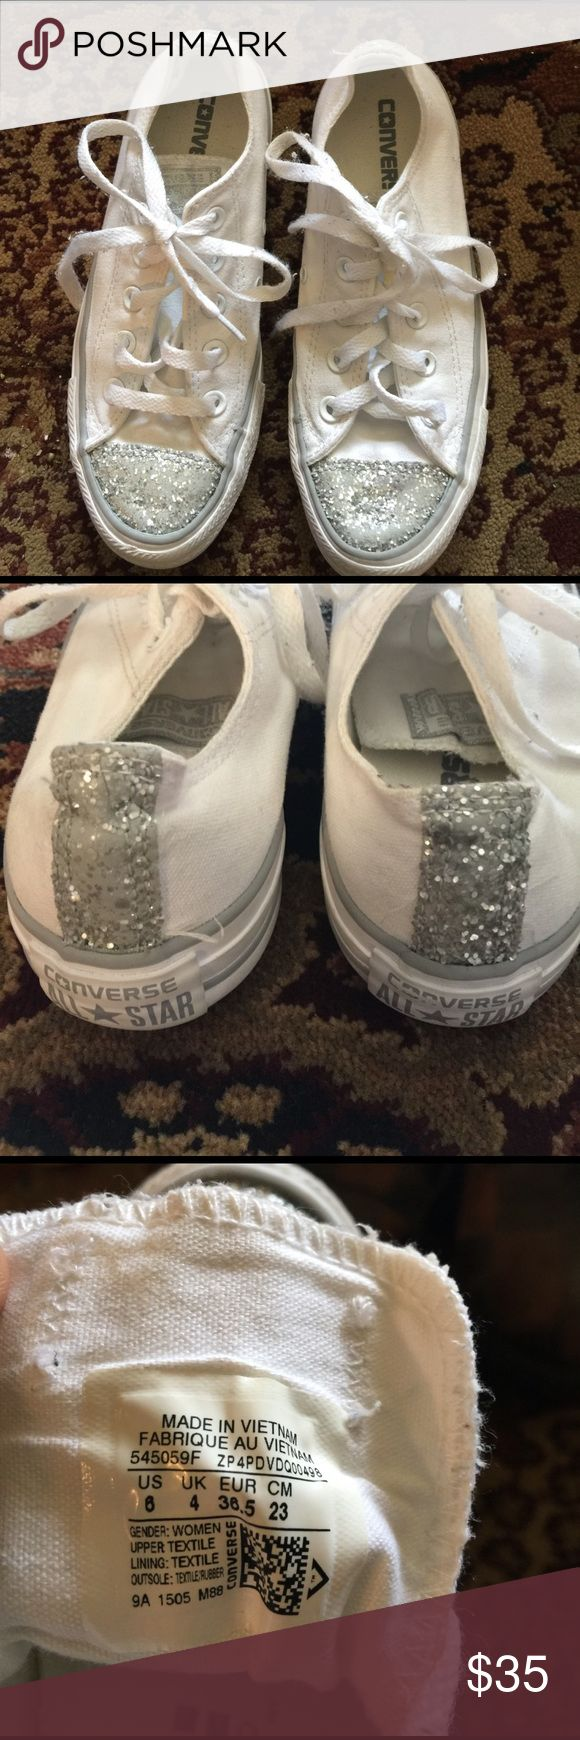 Converse All-Star Sequin Tip Gym-Shoes, Size 6 Super cute Converse All-Stars white sneakers with silver sequin tip and strip on the back. Converse Shoes Sneakers